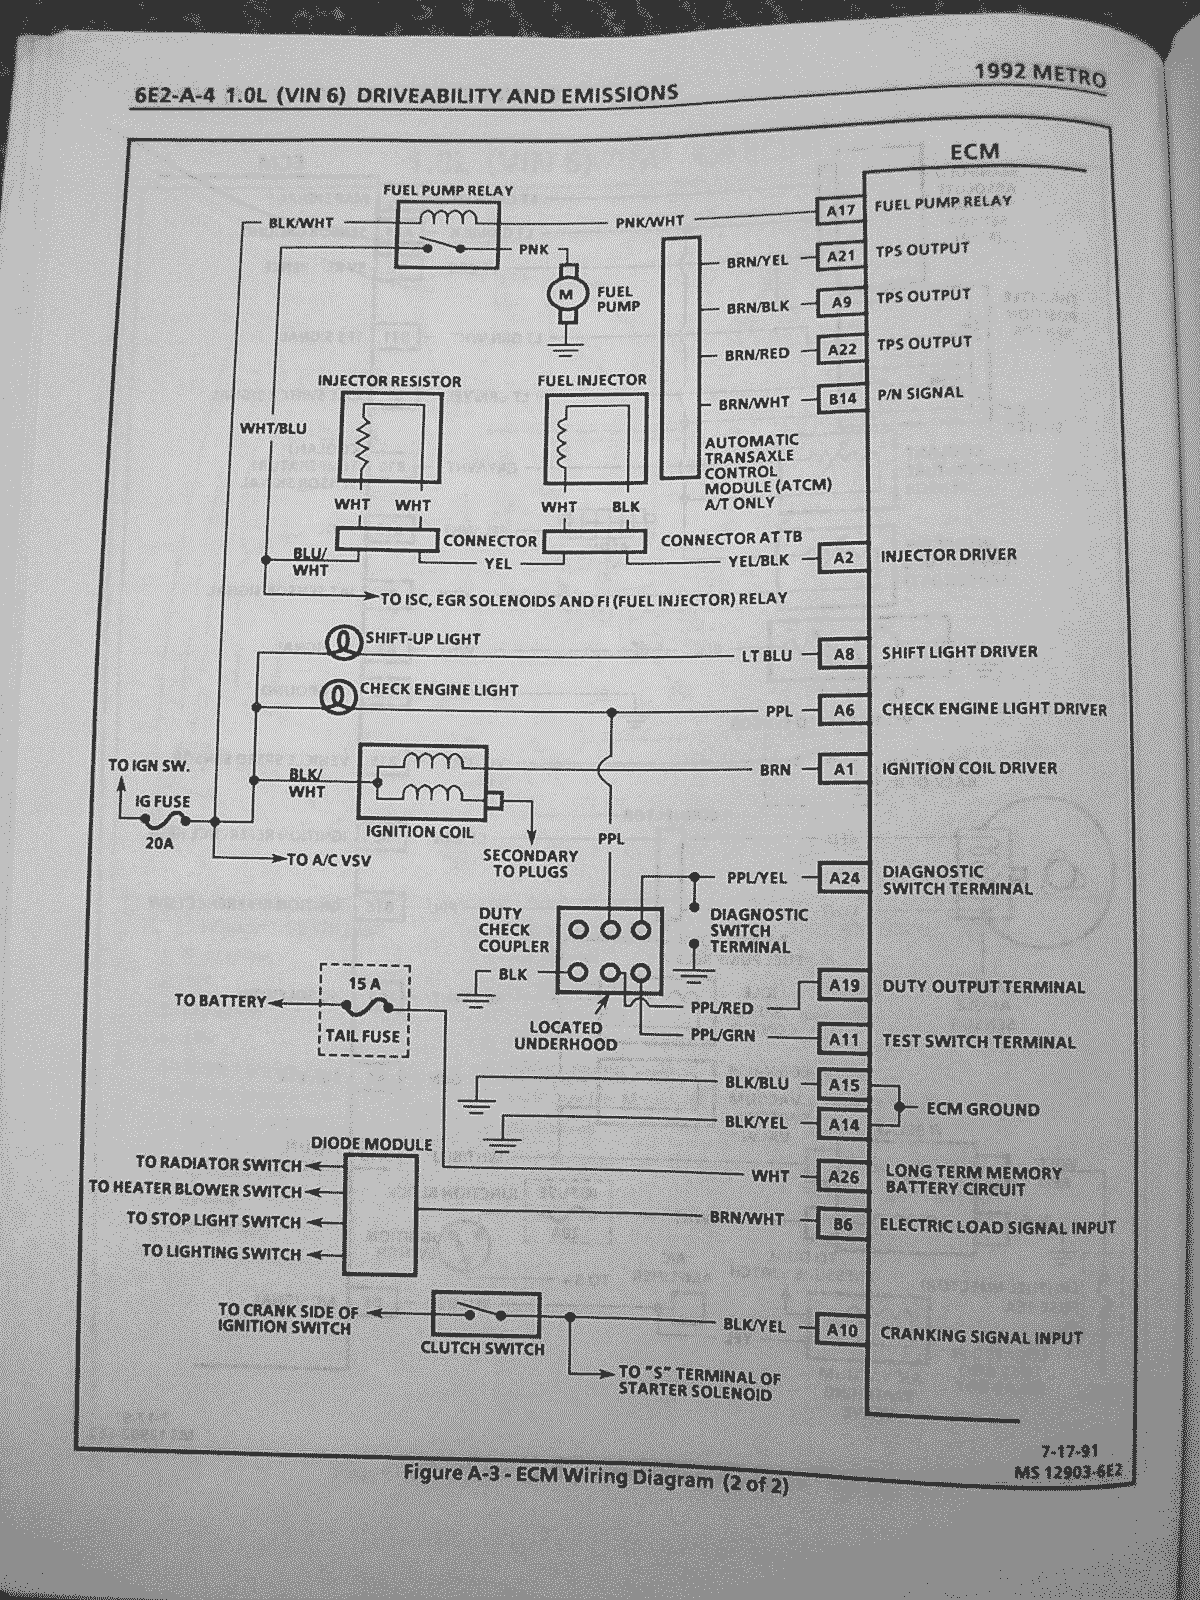 6e2 a 4 geo metro and suzuki swift wiring diagrams metroxfi com 1998 chevy metro wiring diagram at mifinder.co